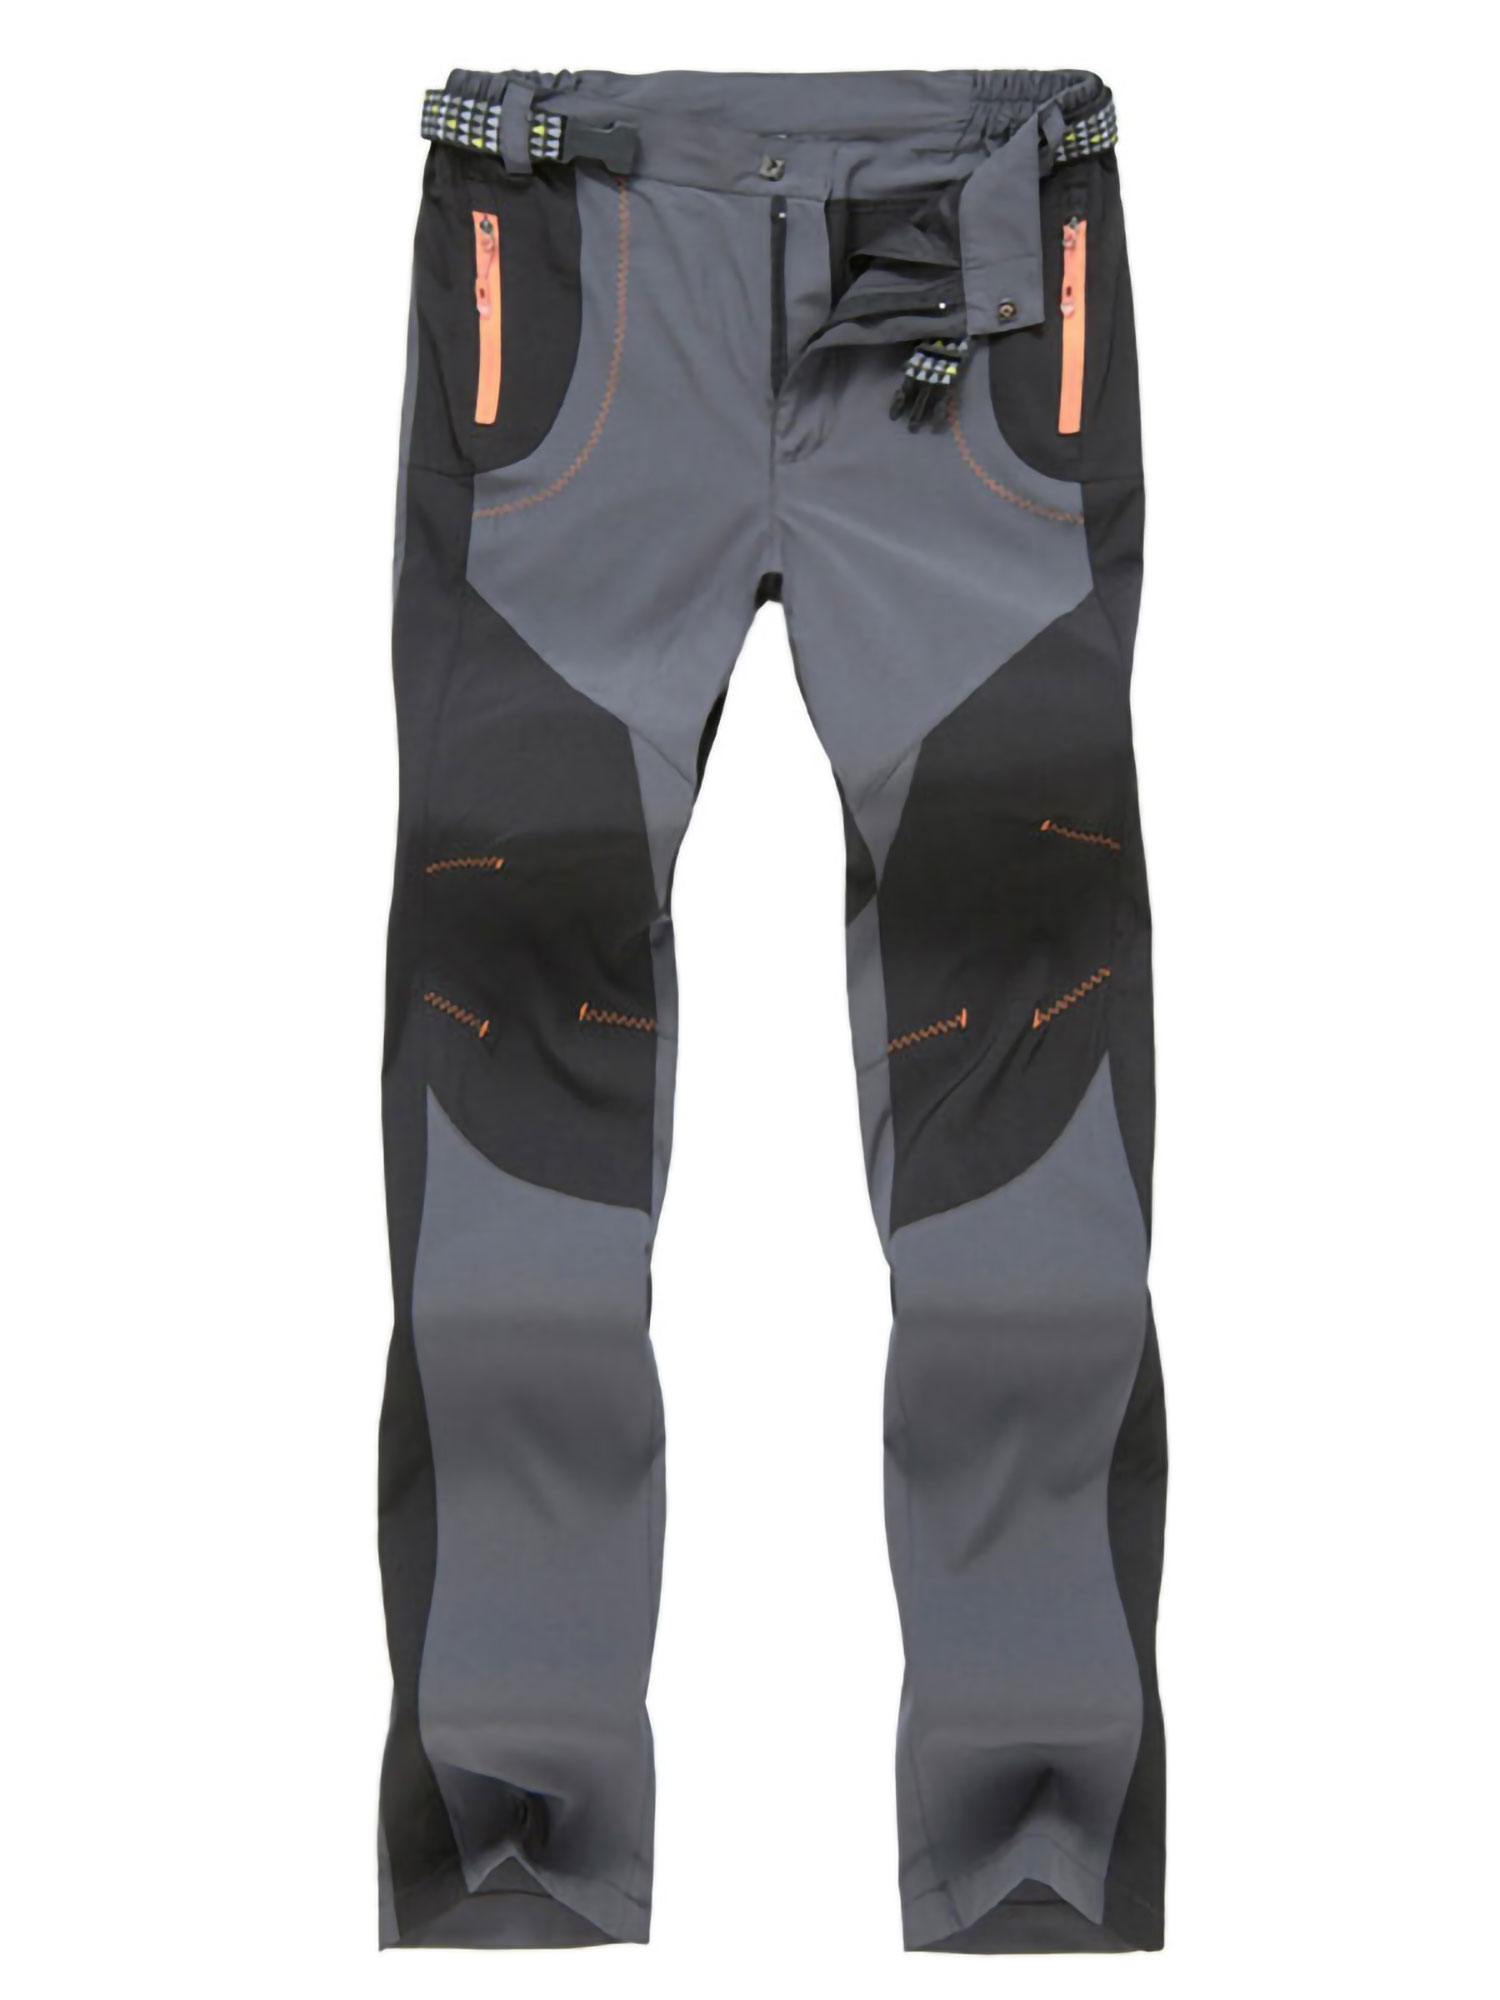 Men Women Water-proof Breathable Softshell Pants Camping Hiking Skiing Trousers